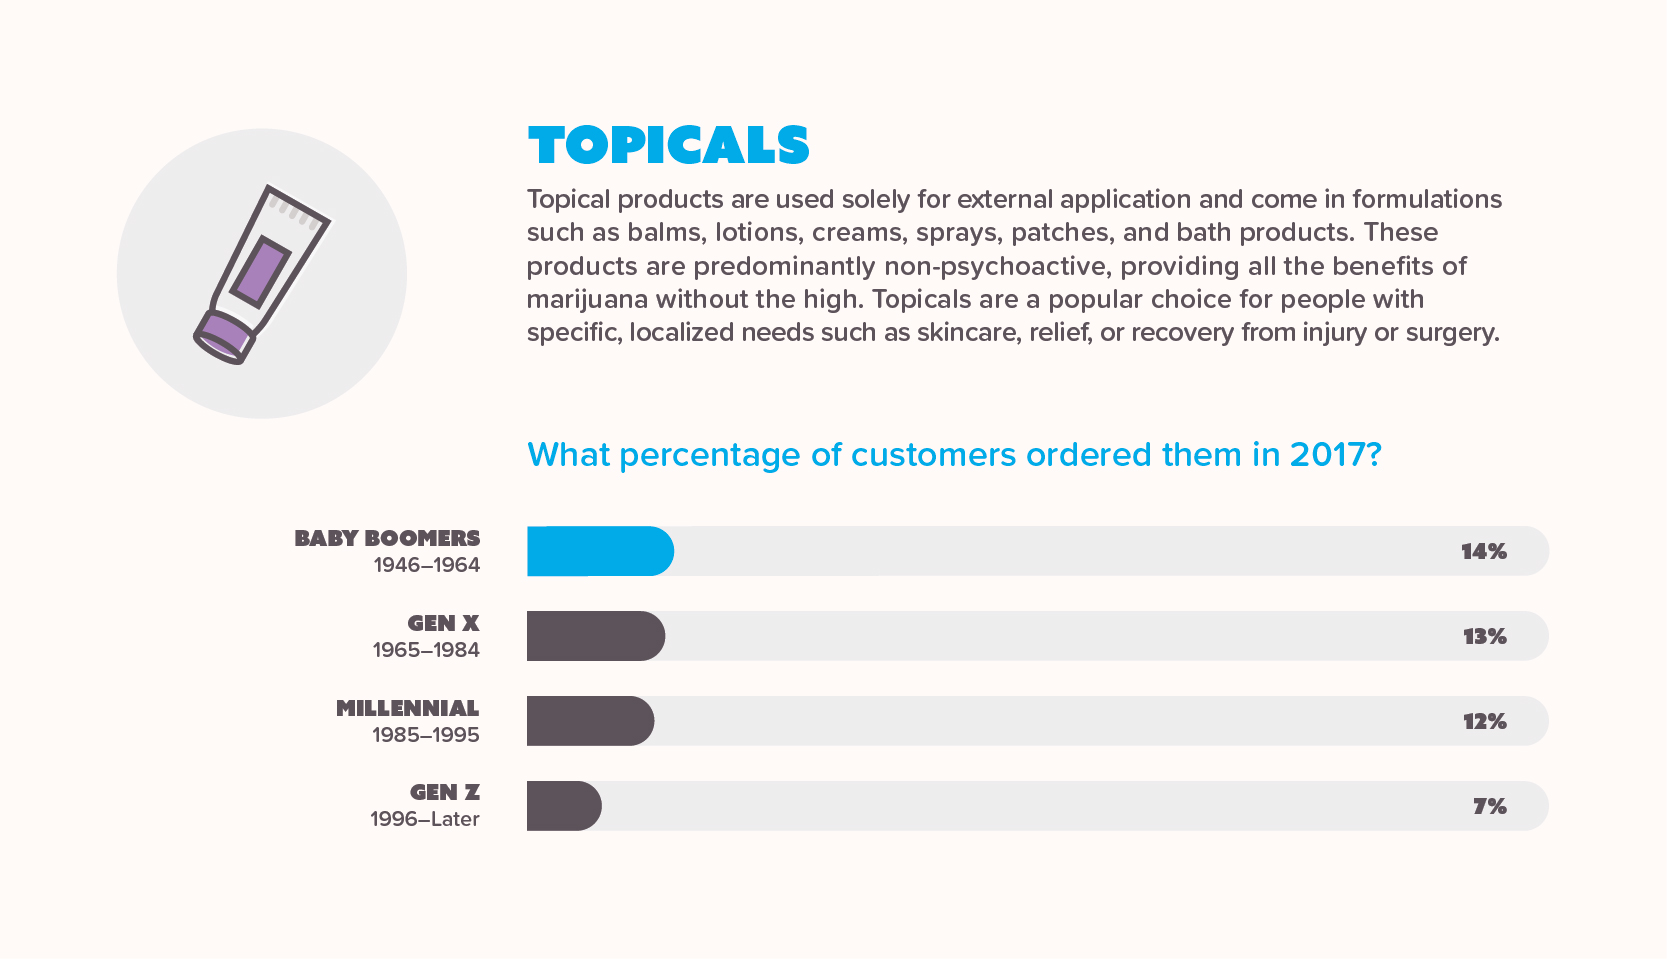 Infographic showing sales of marijuana topicals per generation in 2017